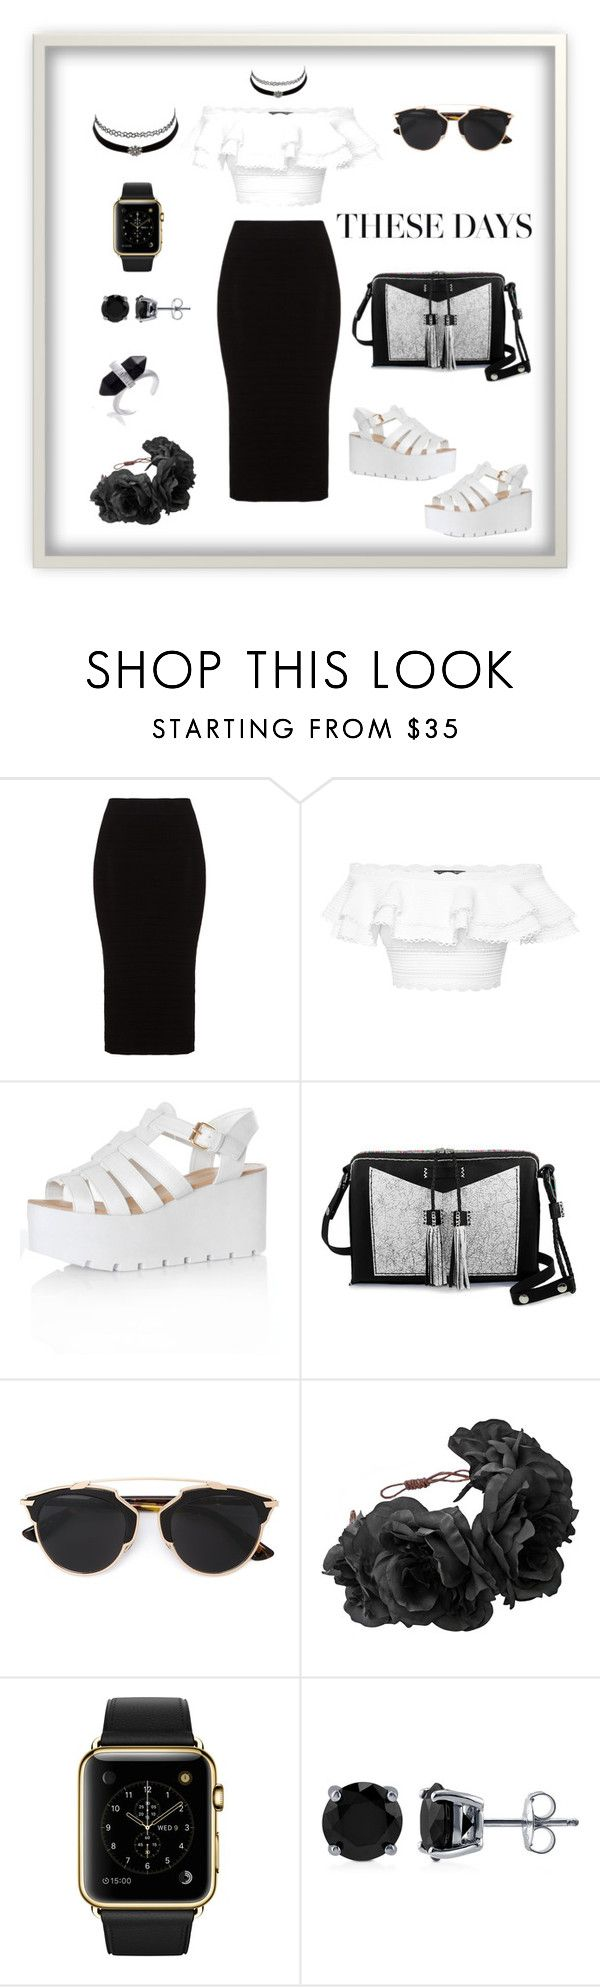 These Days Style by pepito-sutrisno on Polyvore featuring Alexander McQueen, Mat, Glamorous, Carianne Moore, BERRICLE, Christian Dior and Charlotte Russe